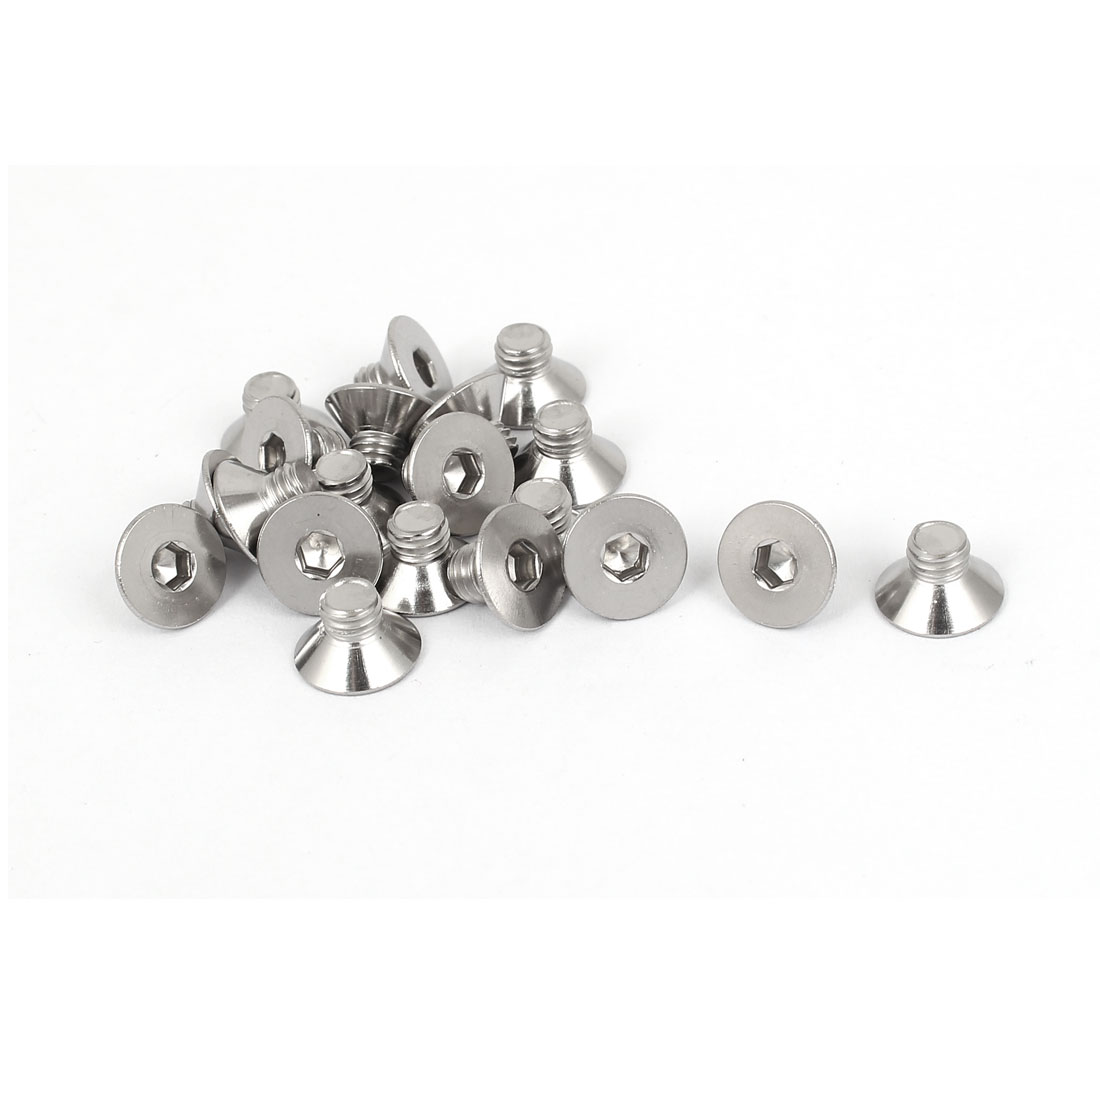 M5x6mm Stainless Steel Hex Socket Flat Head Countersunk Bolts Screw 20pcs